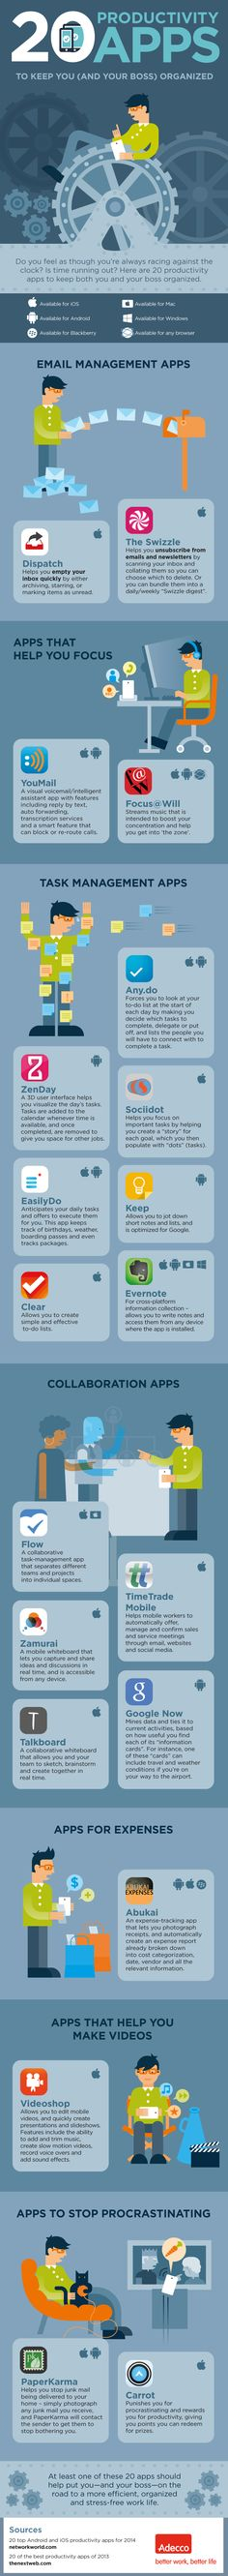 20 Apps to Make You More Productive. #lifehack